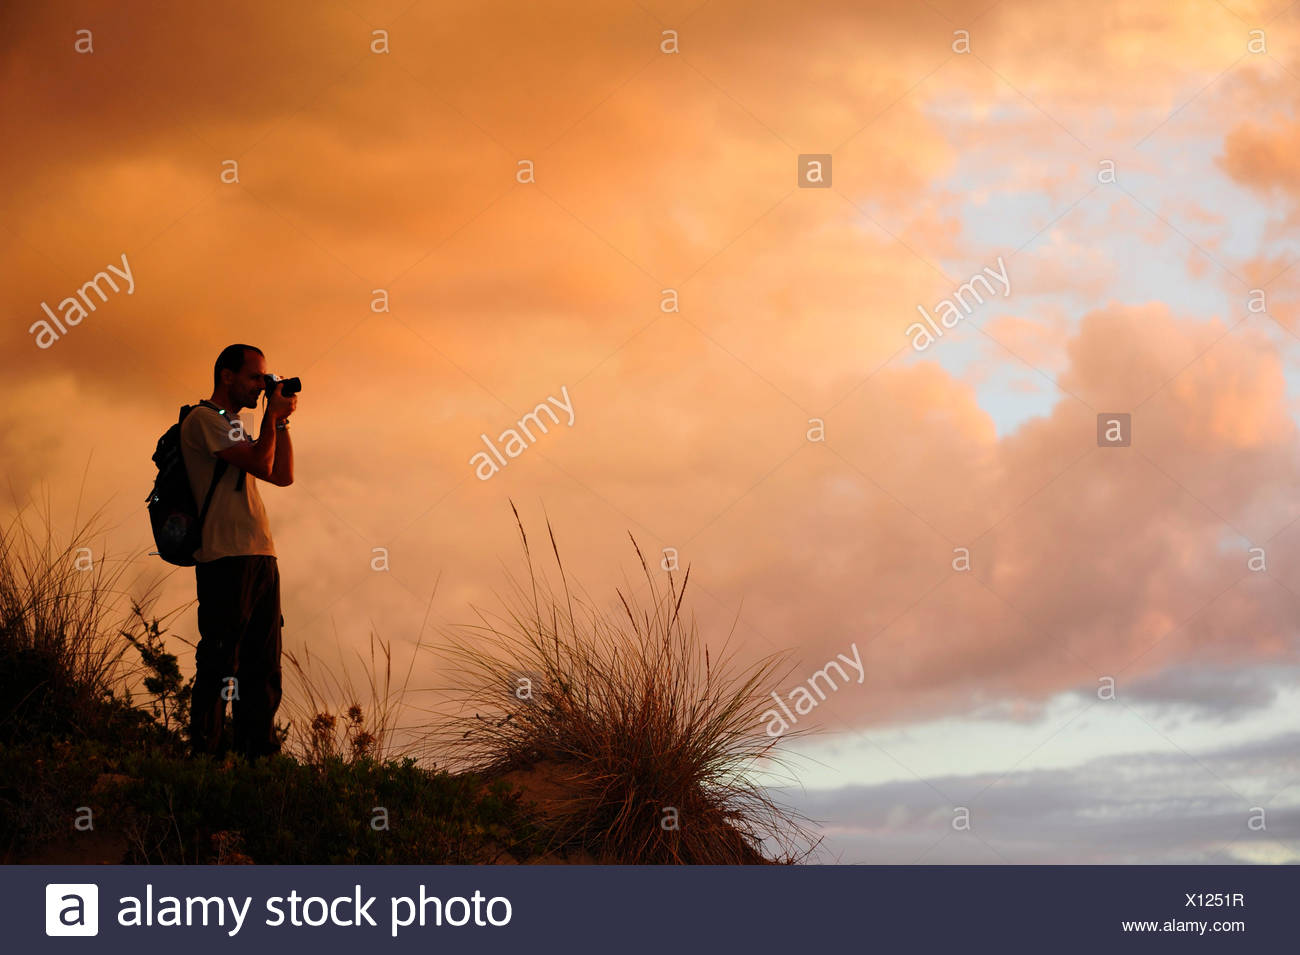 silhouette of a nature photographer in the dunes in the evening glow, Greece, Peloponnese, Messenia Stock Photo